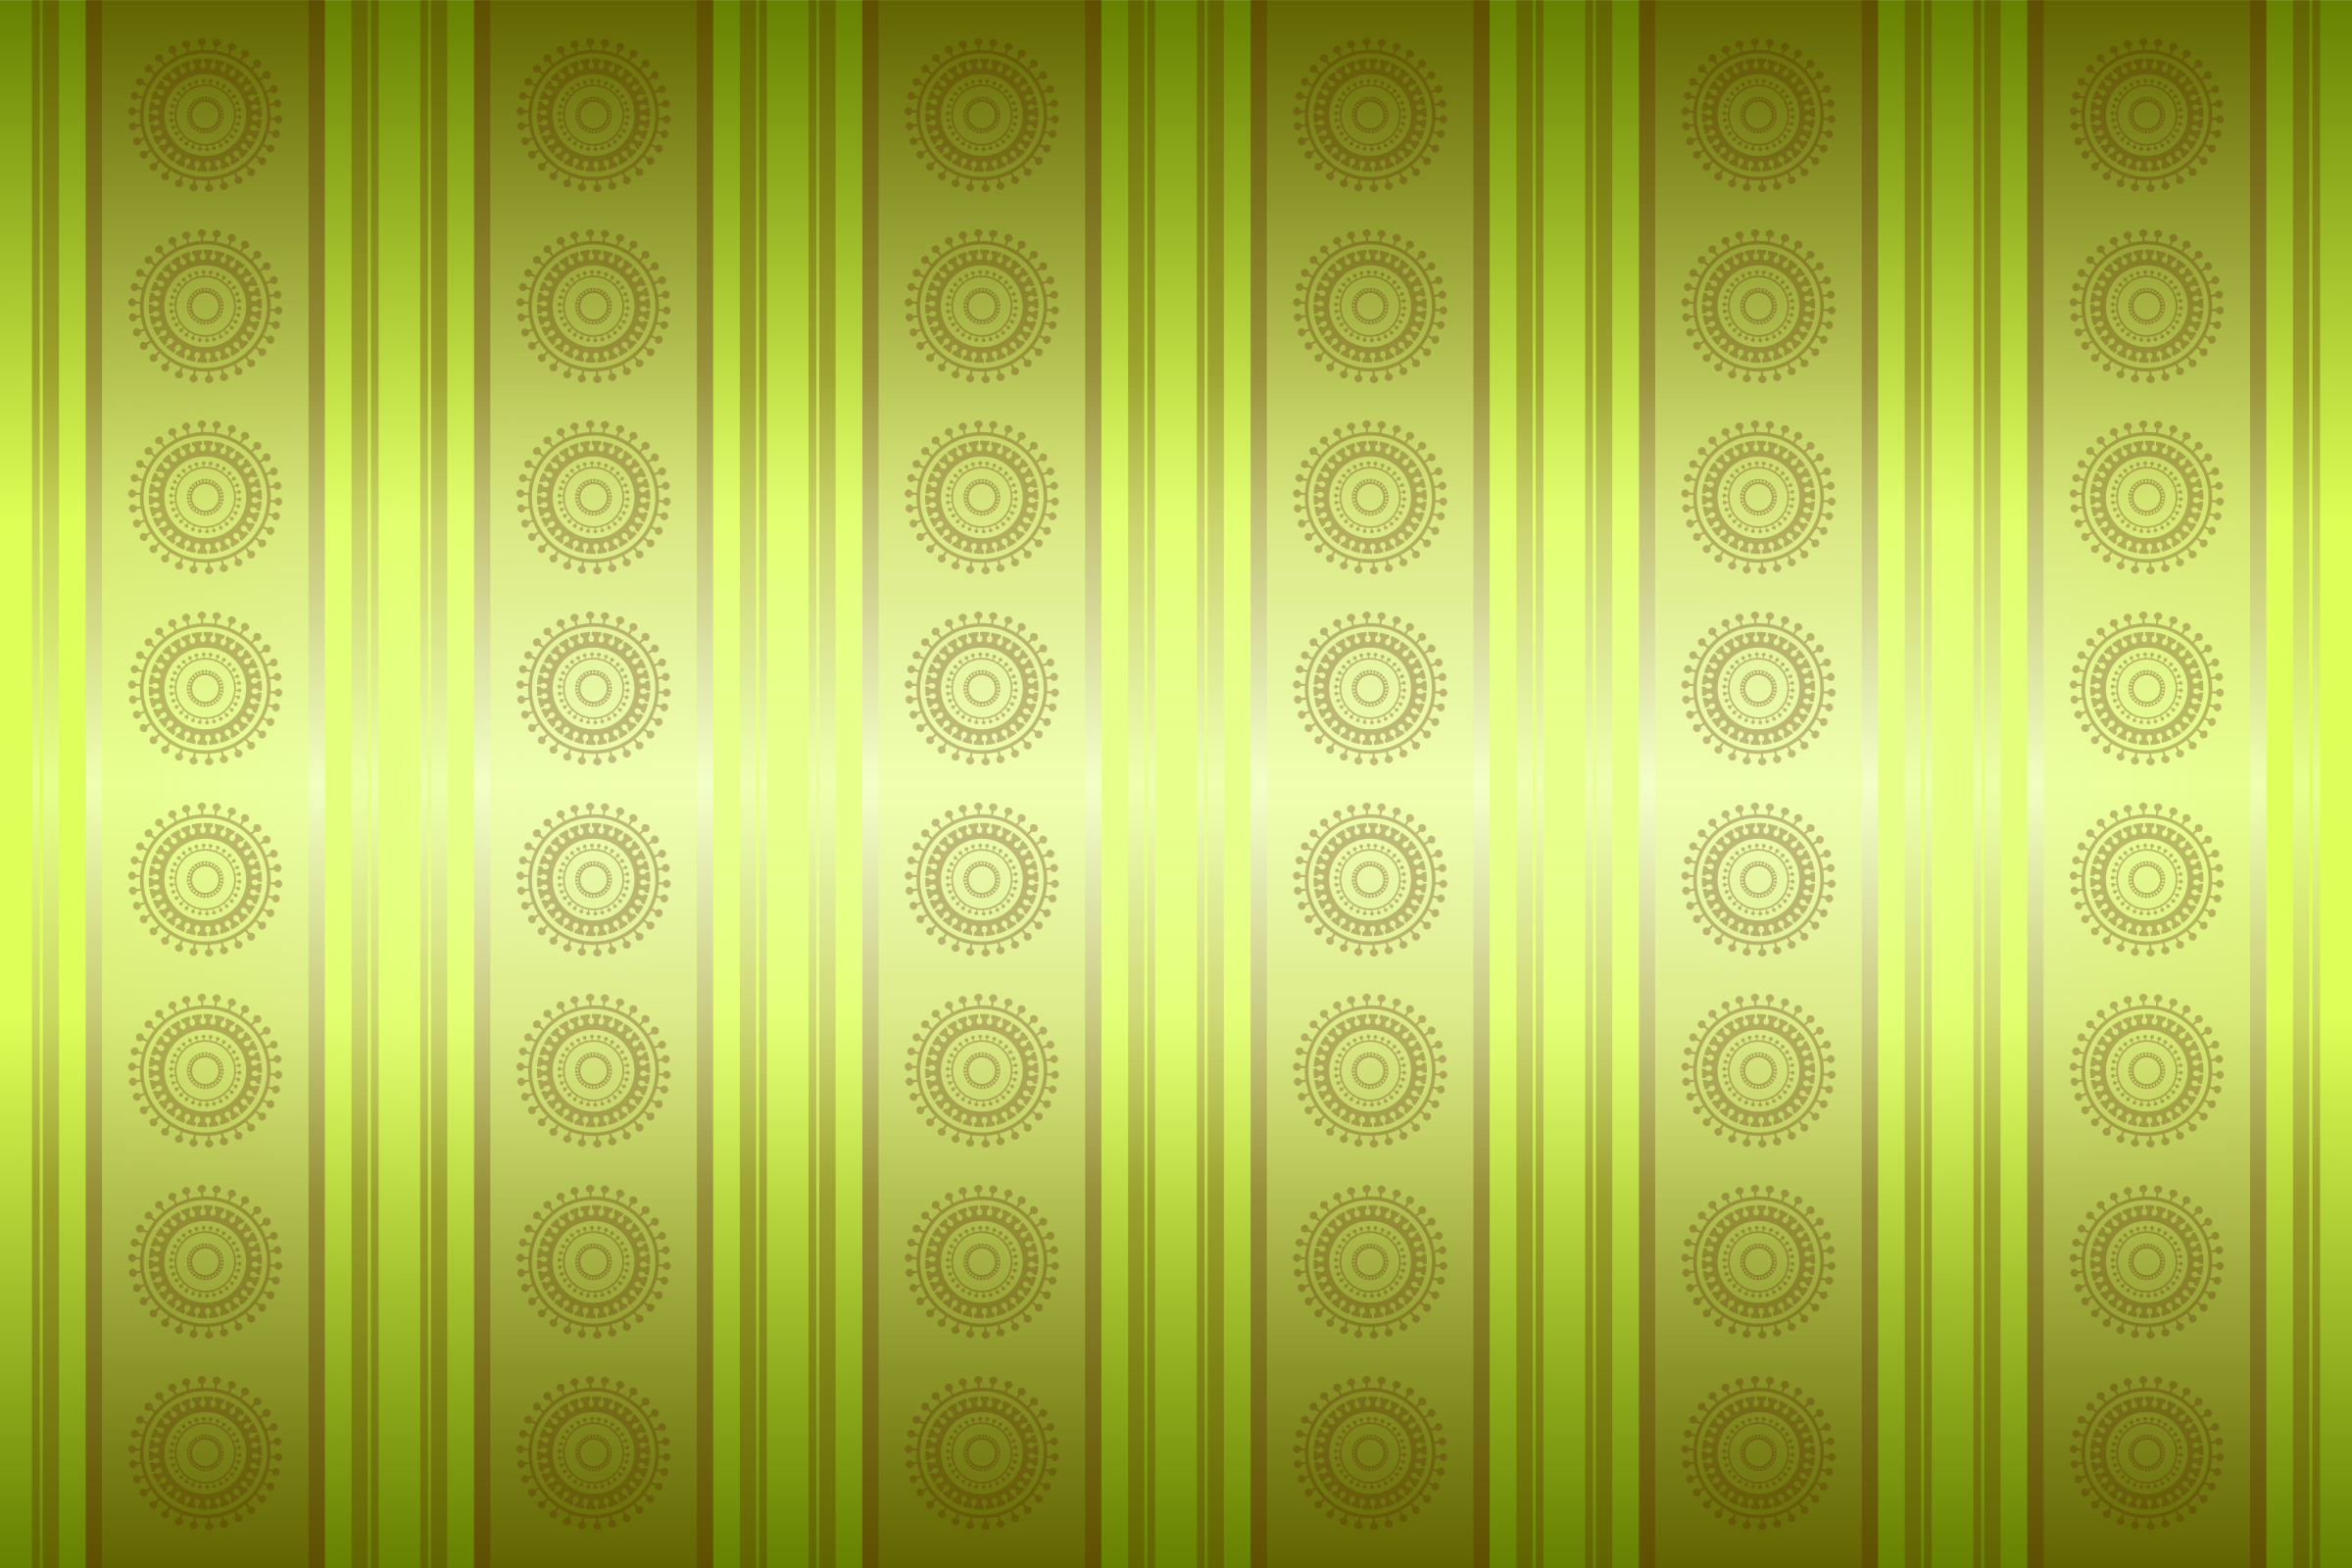 Background Patterns - Citrone by Viscious-Speed